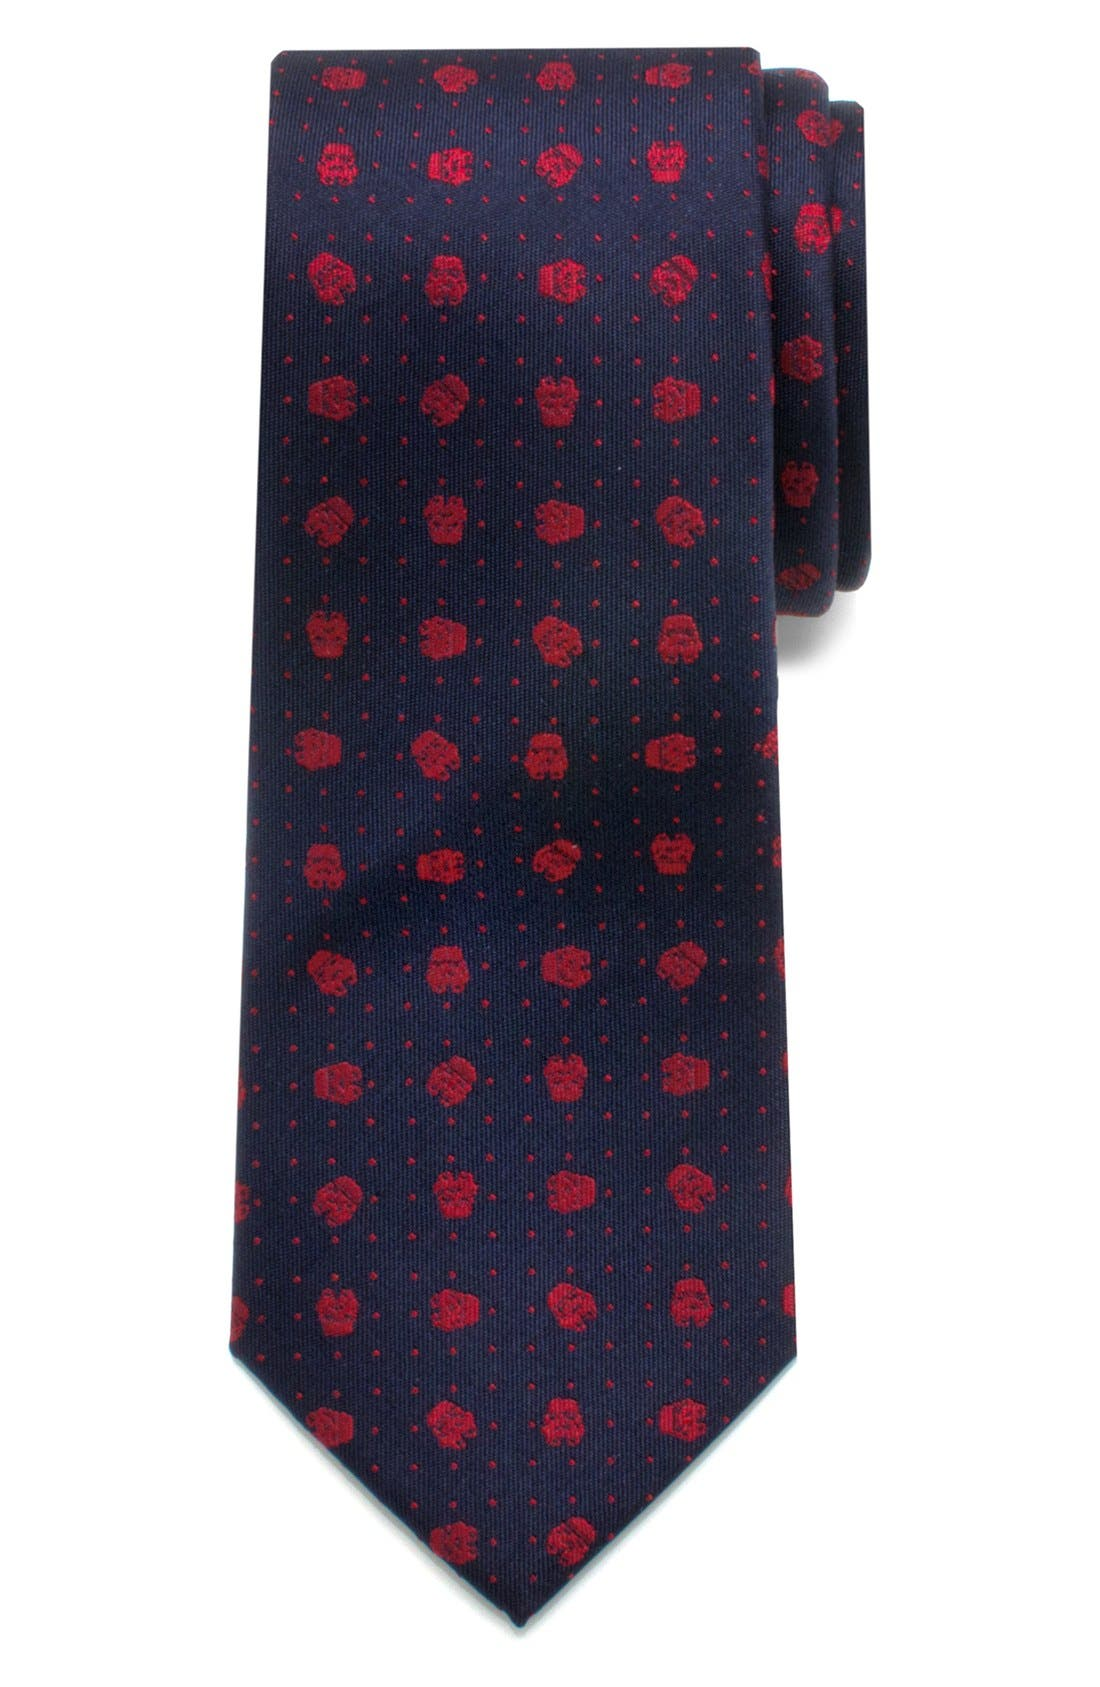 'Star Wars<sup>™</sup> - Stormtrooper Dot' Silk Tie,                             Main thumbnail 1, color,                             400